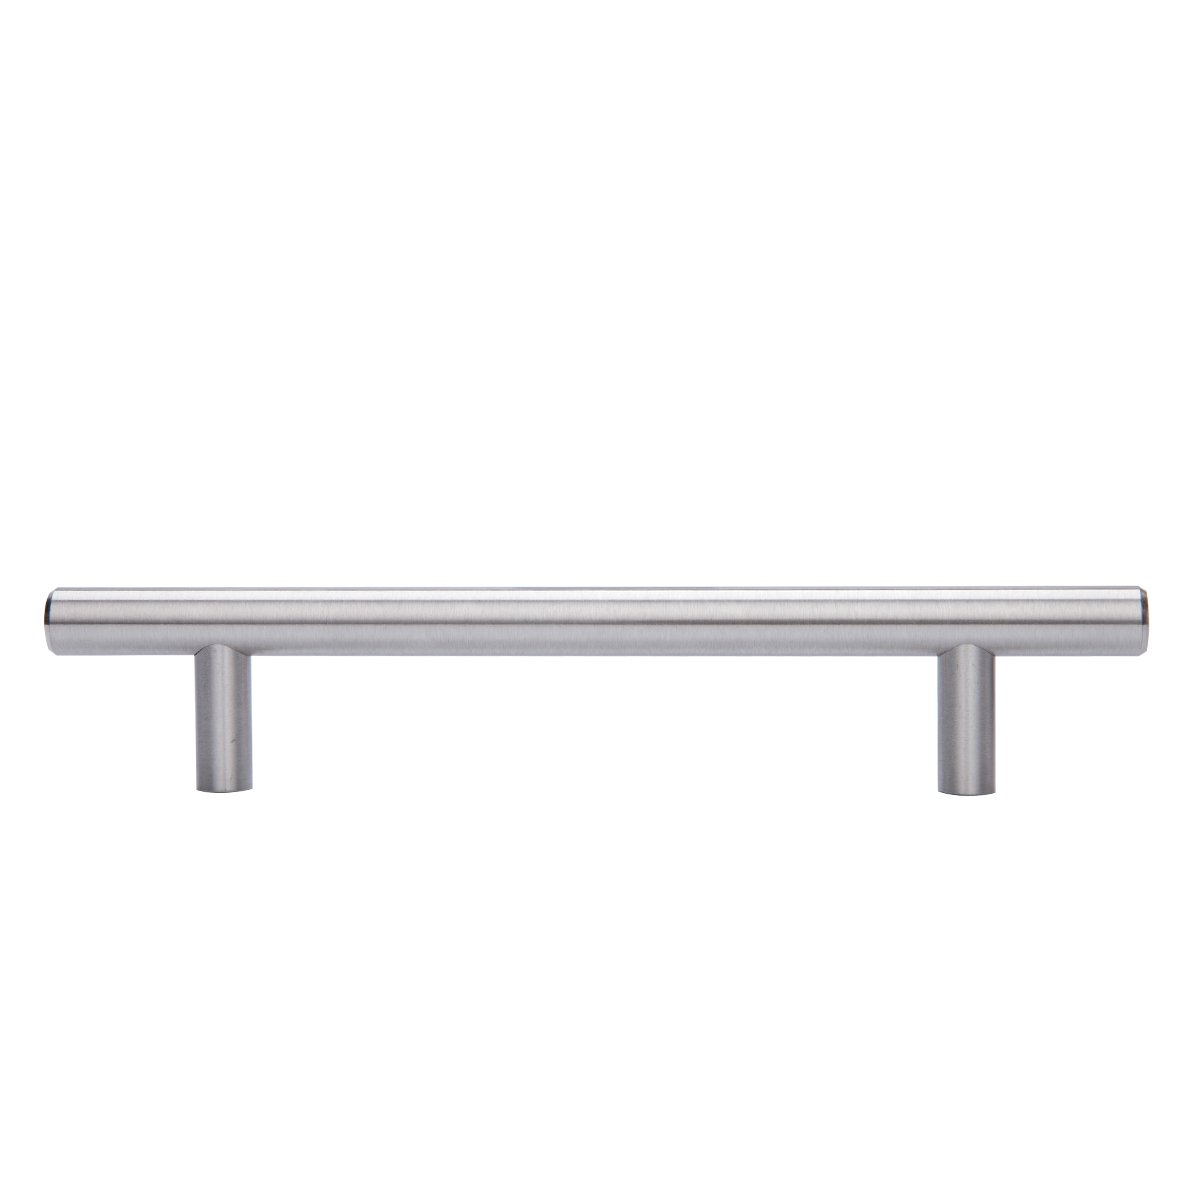 AmazonBasics Euro Bar Kitchen Cabinet Handle 1/2 Inch Diameter, 7.38 Inch Length, 5 Inch Hole Center, Satin Nickel, 25-Pack by AmazonBasics (Image #4)